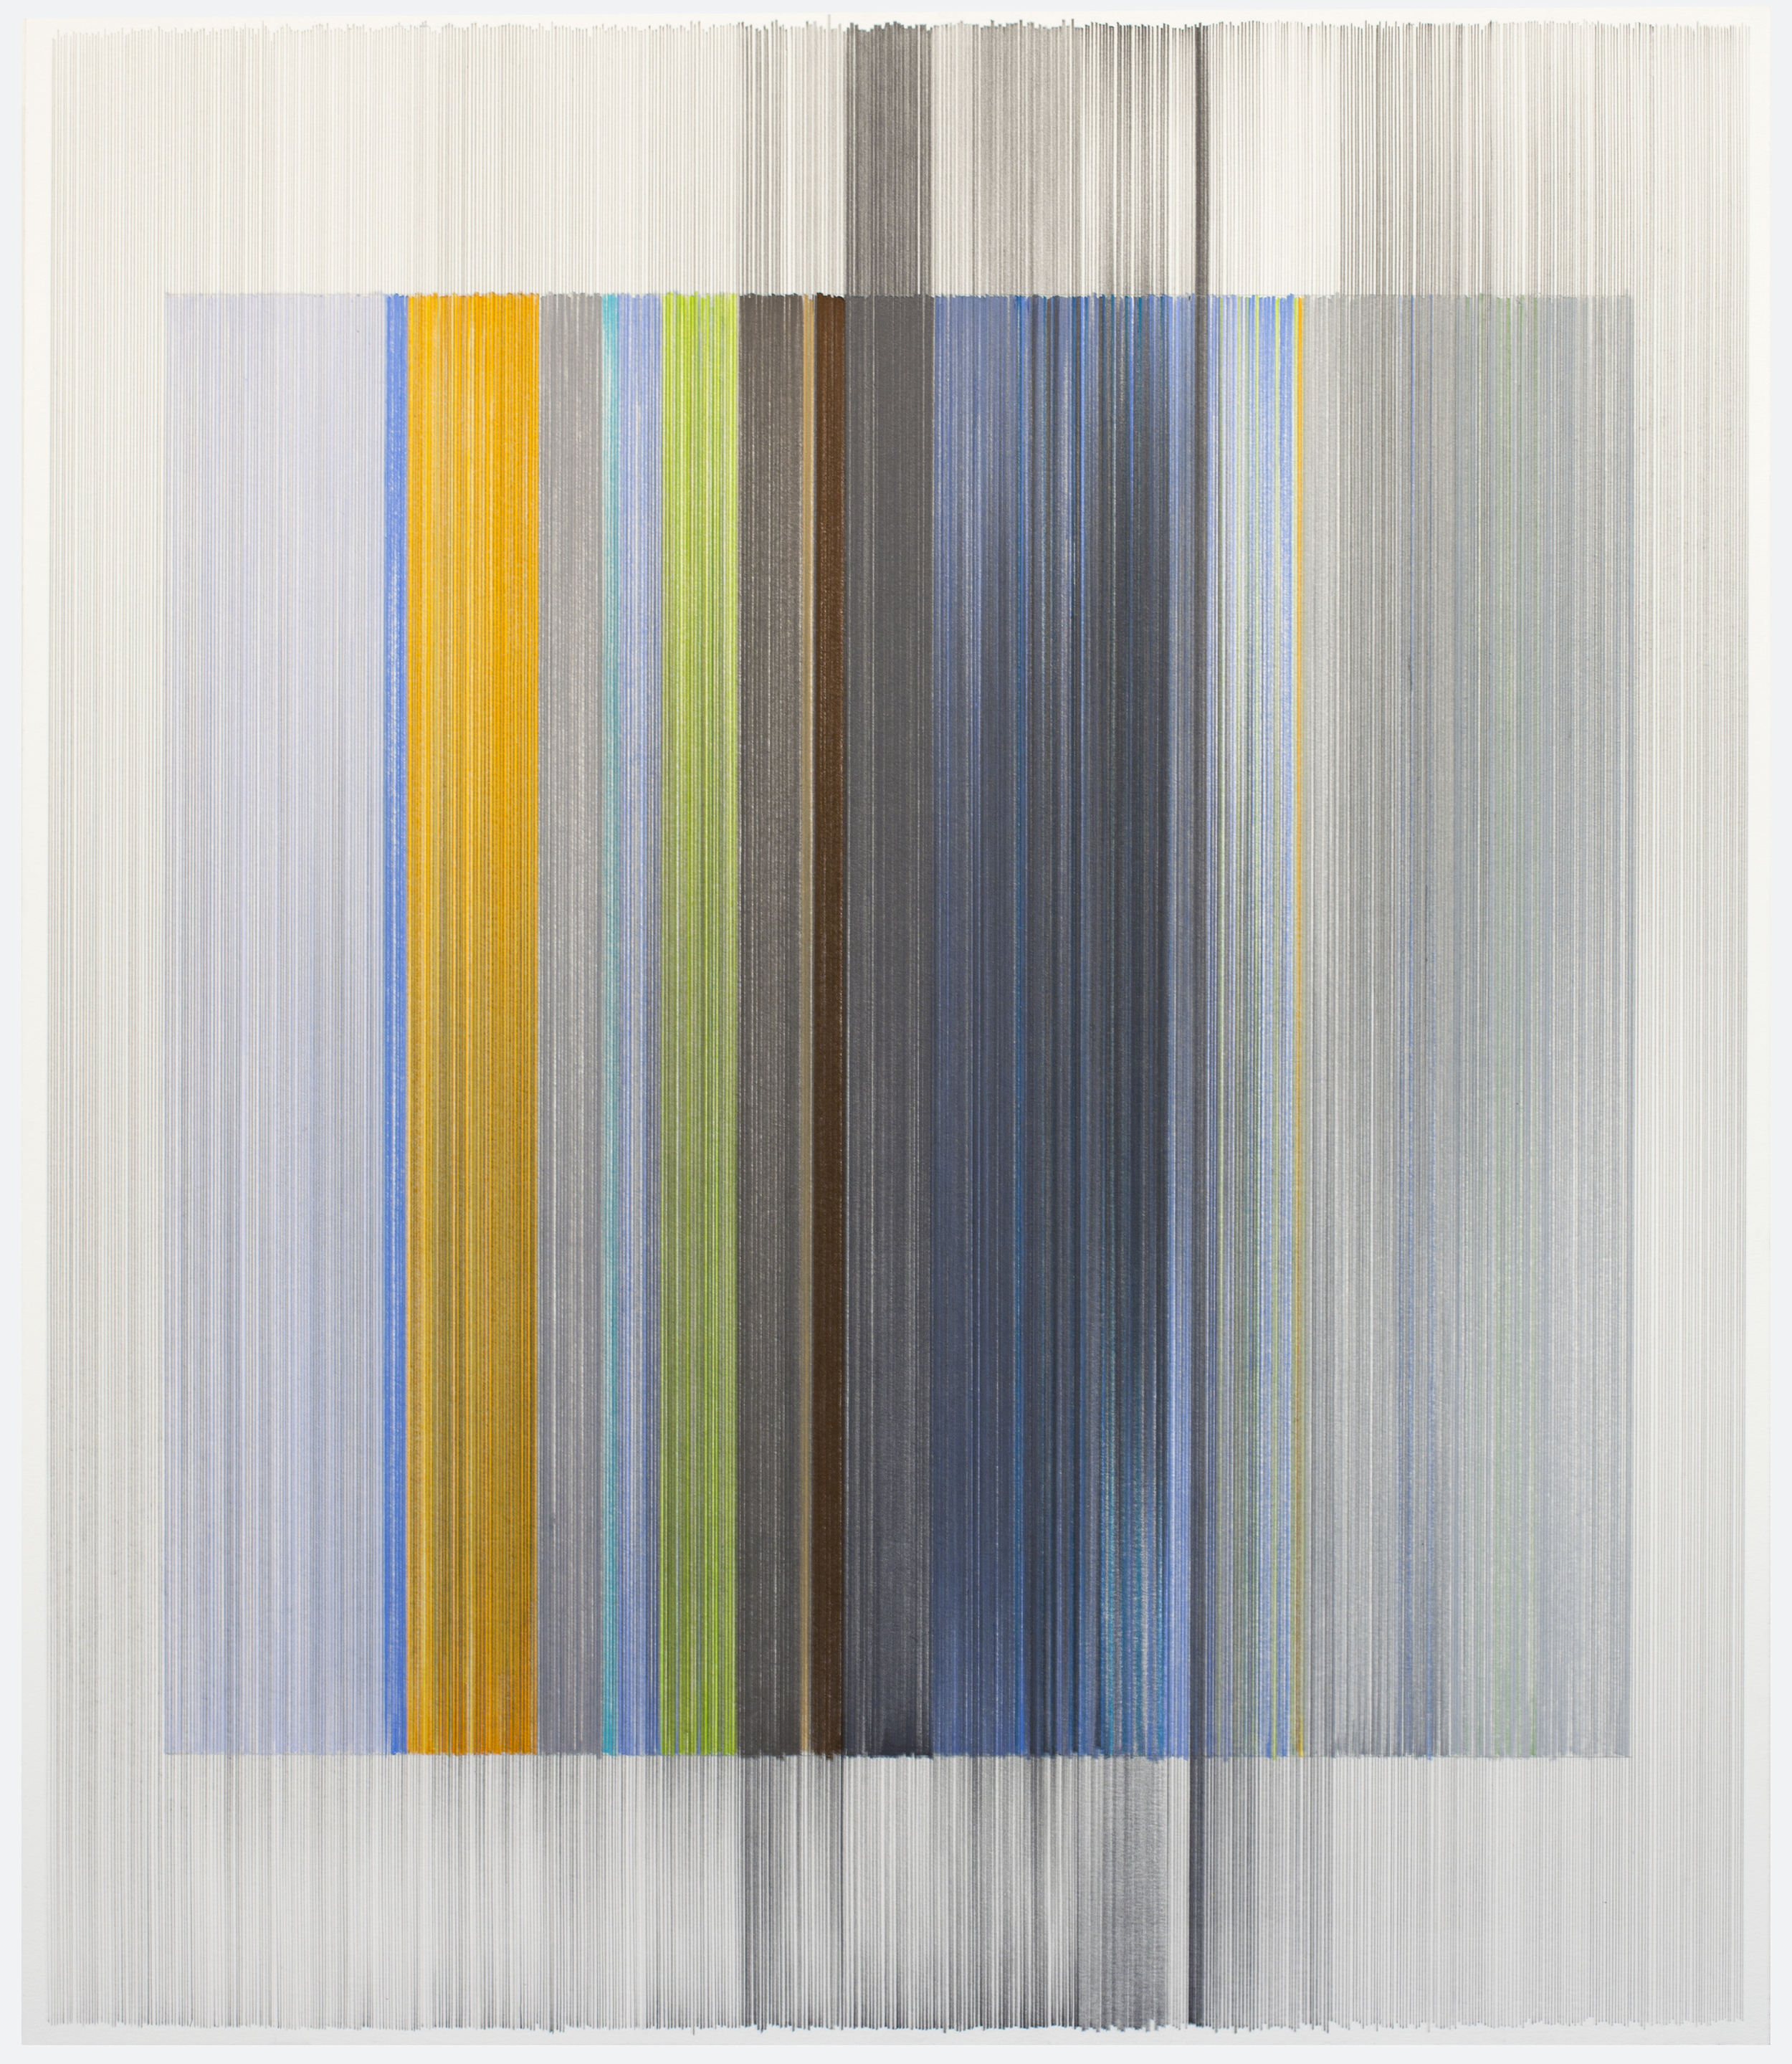 unfold 11   2016   graphite & colored pencil on mat board   24 by 28 inches